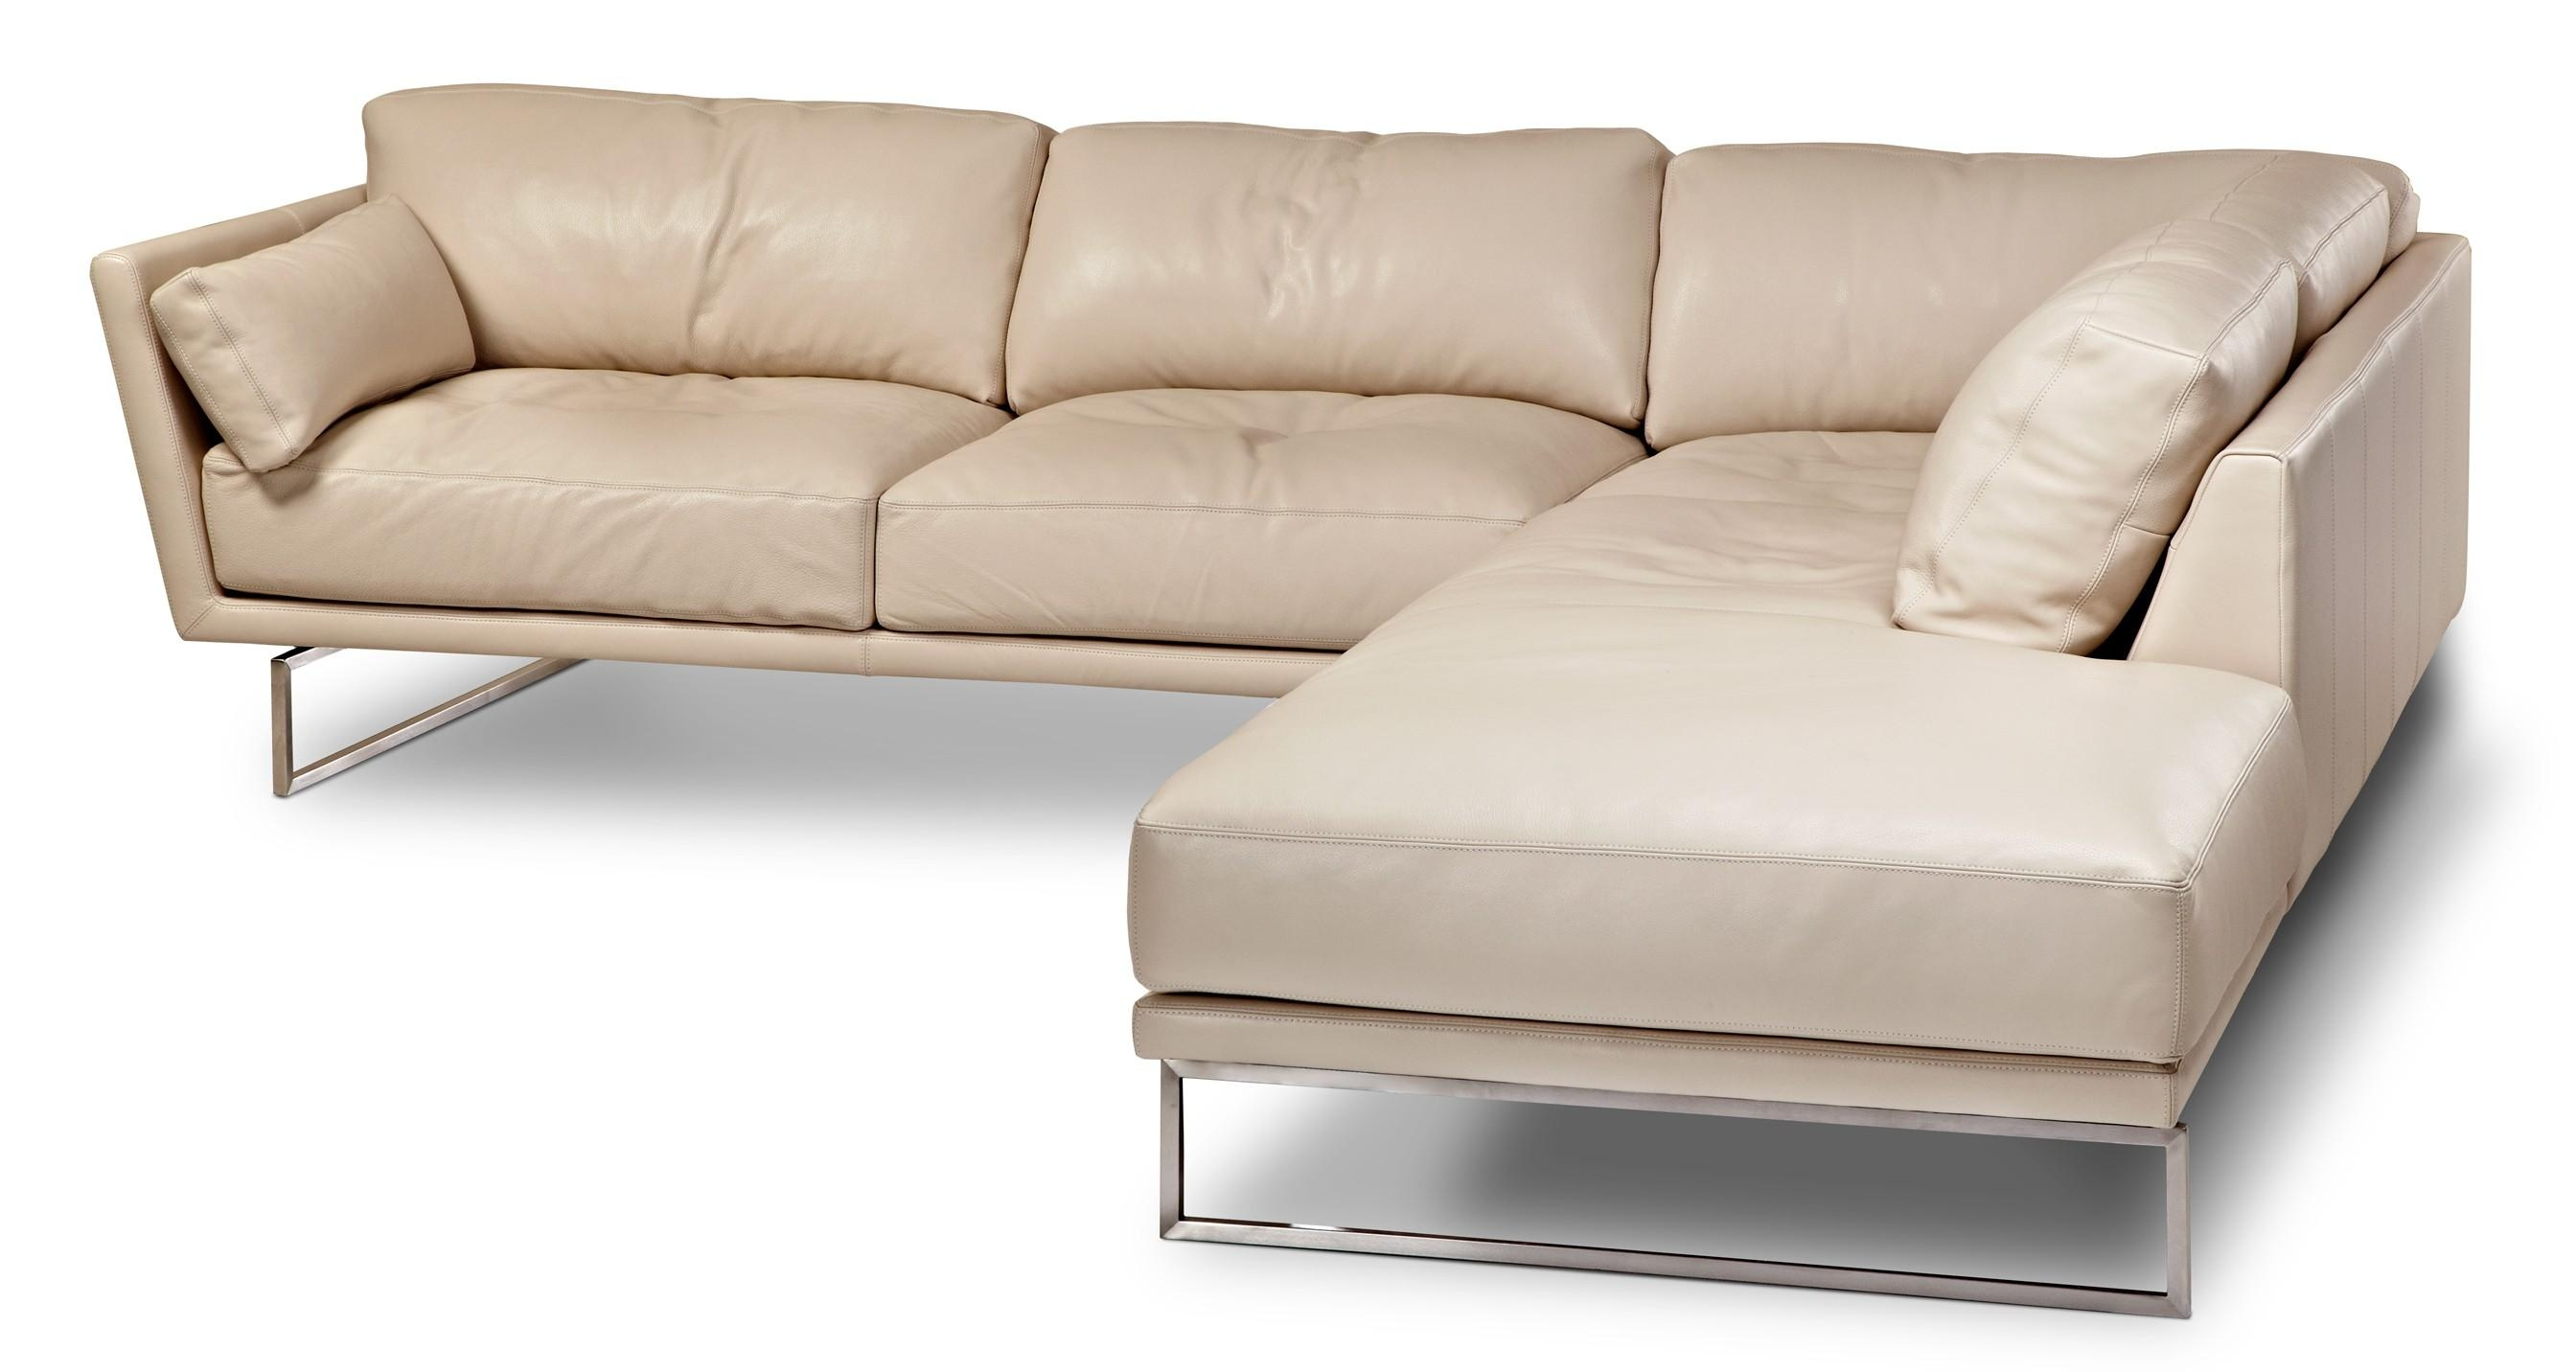 Sofas Center : Nashican Leather Sofa Discount Sleeper Sofaamerican With Sleek Sectional Sofa (Image 18 of 20)